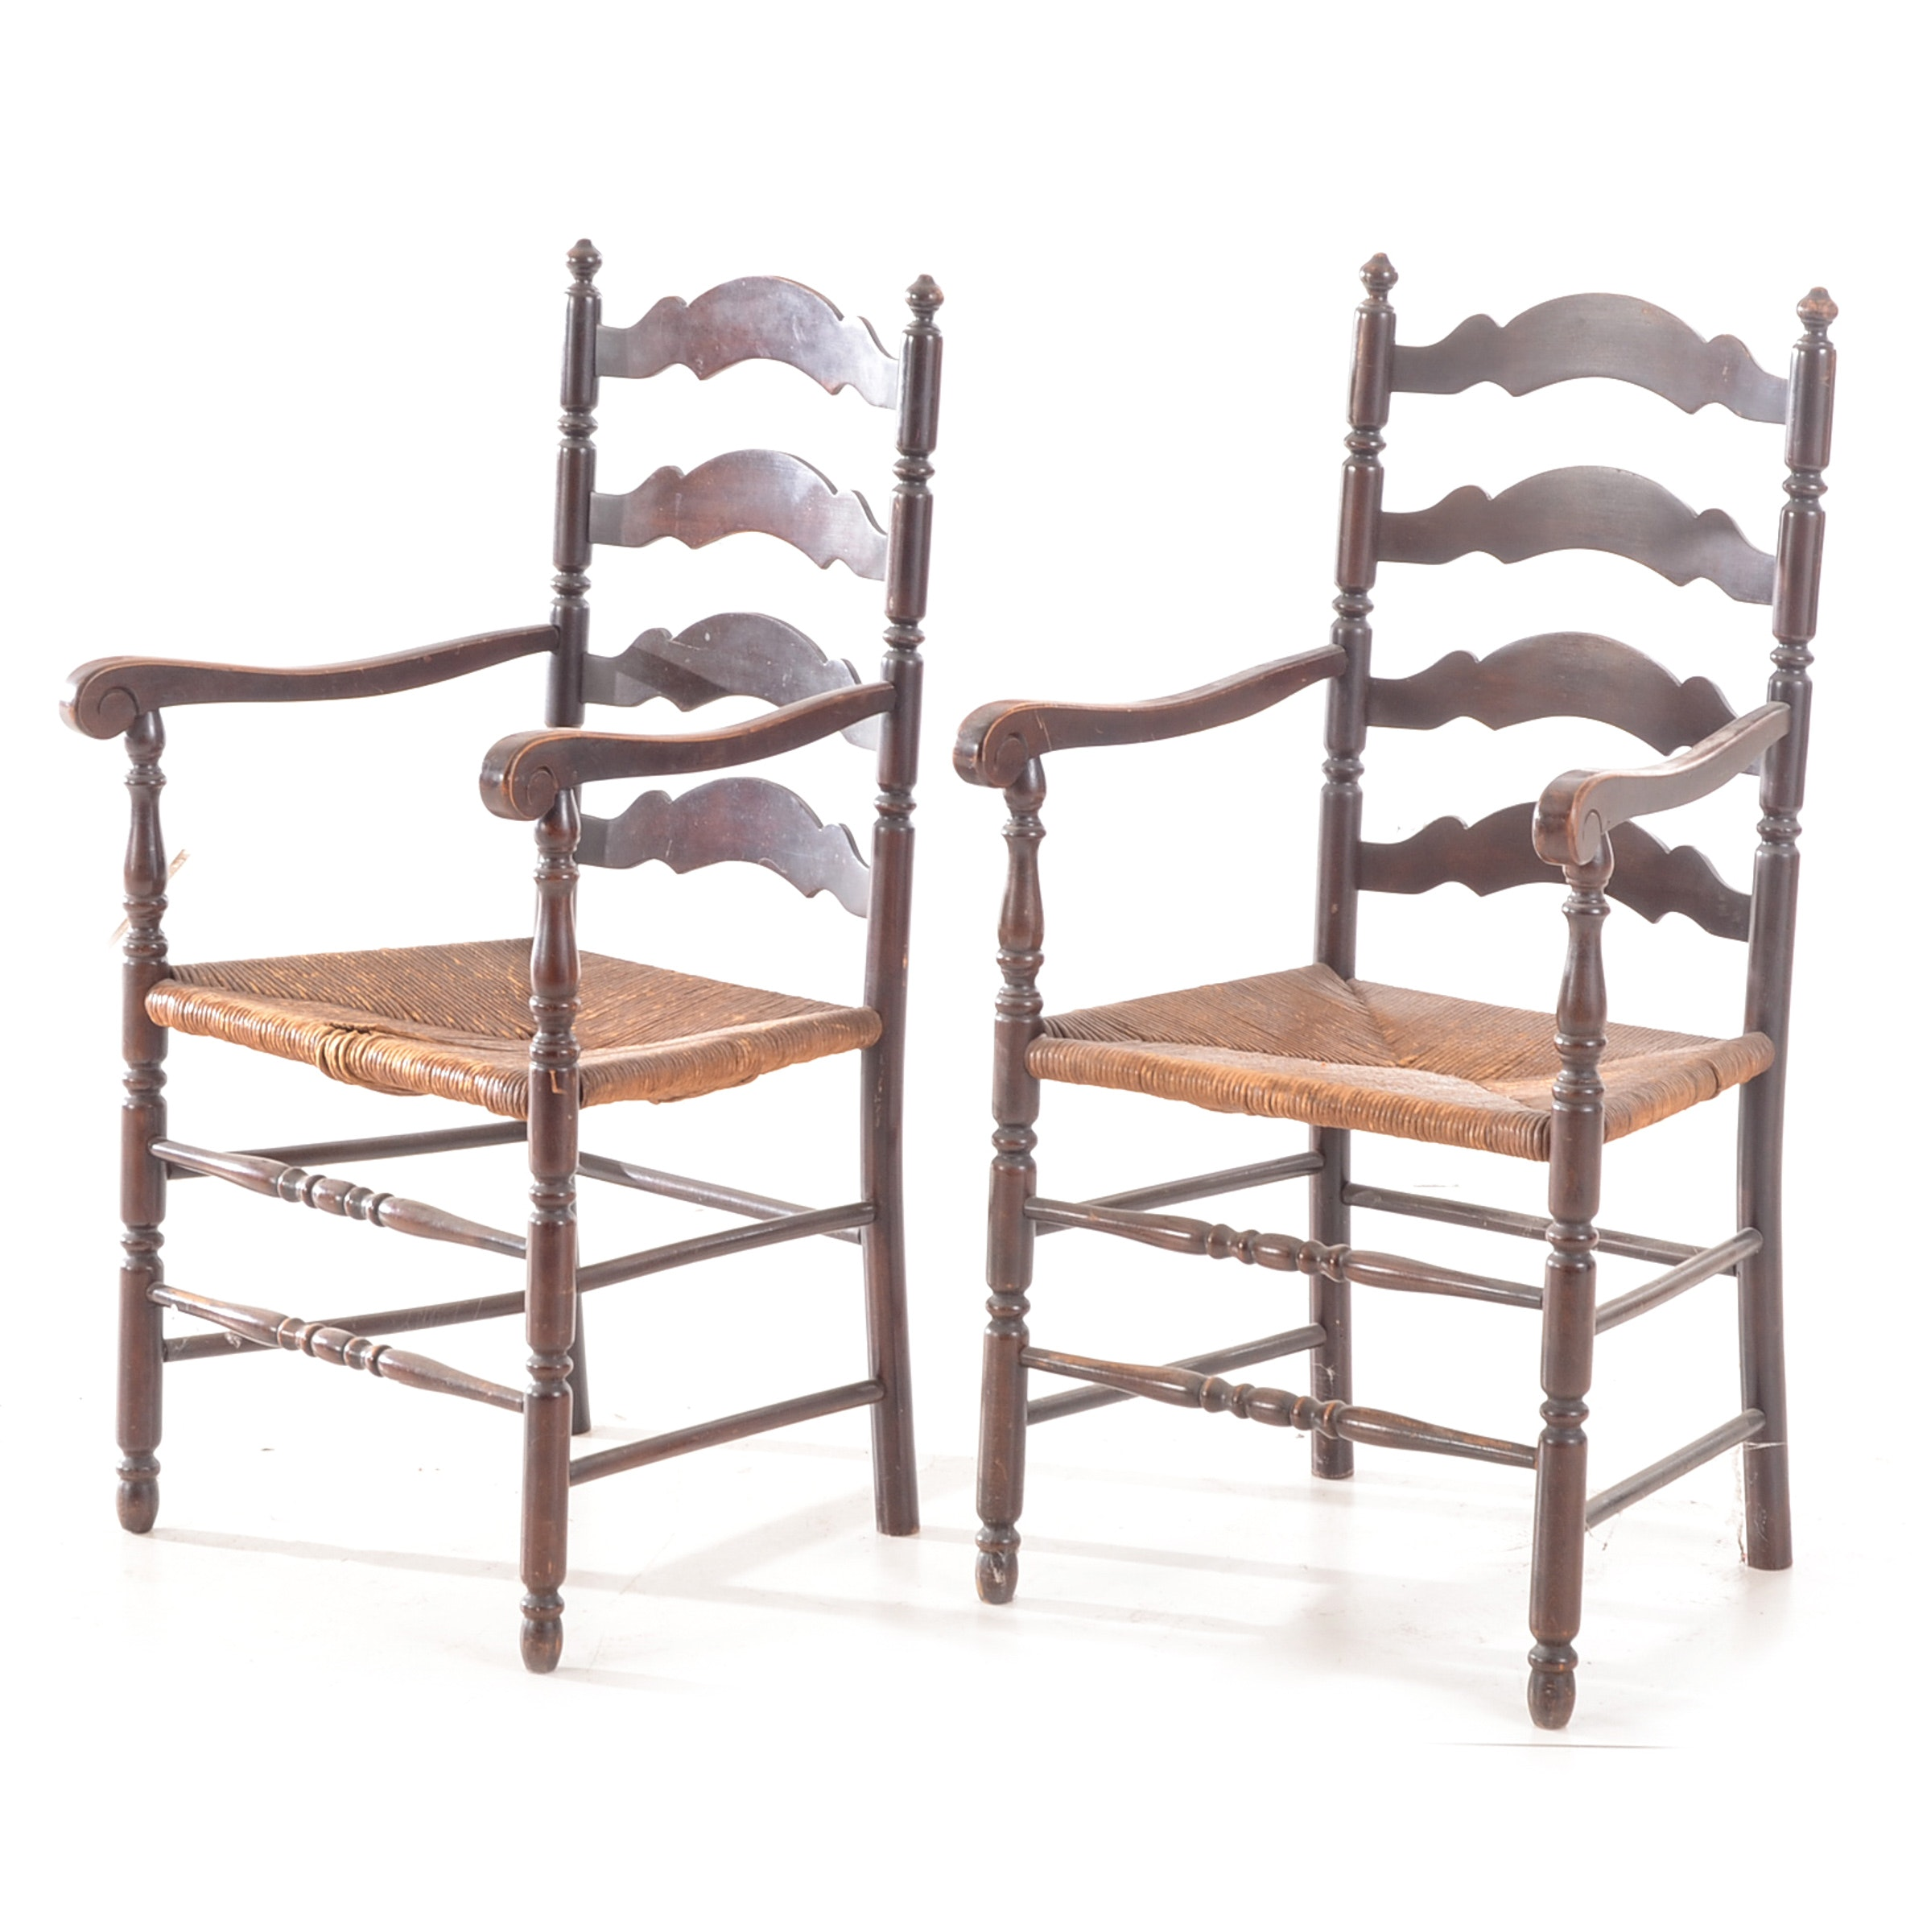 Pair of Vintage Ladder-Back Arm Chairs